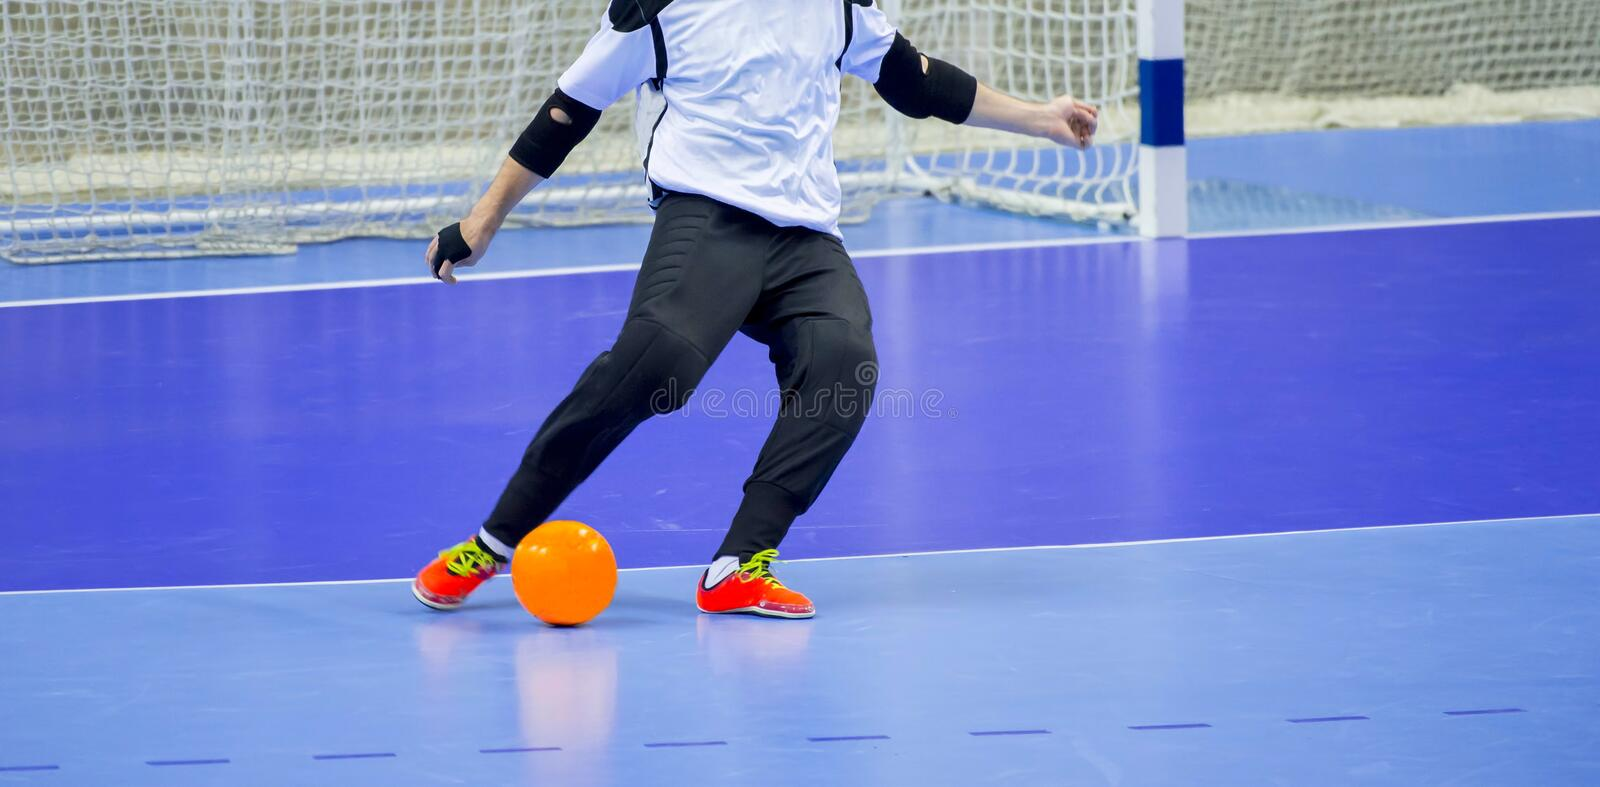 Football Futsal Ball and man Team. Indoor Soccer Sports Hall. goalkeeper with a ball stock images